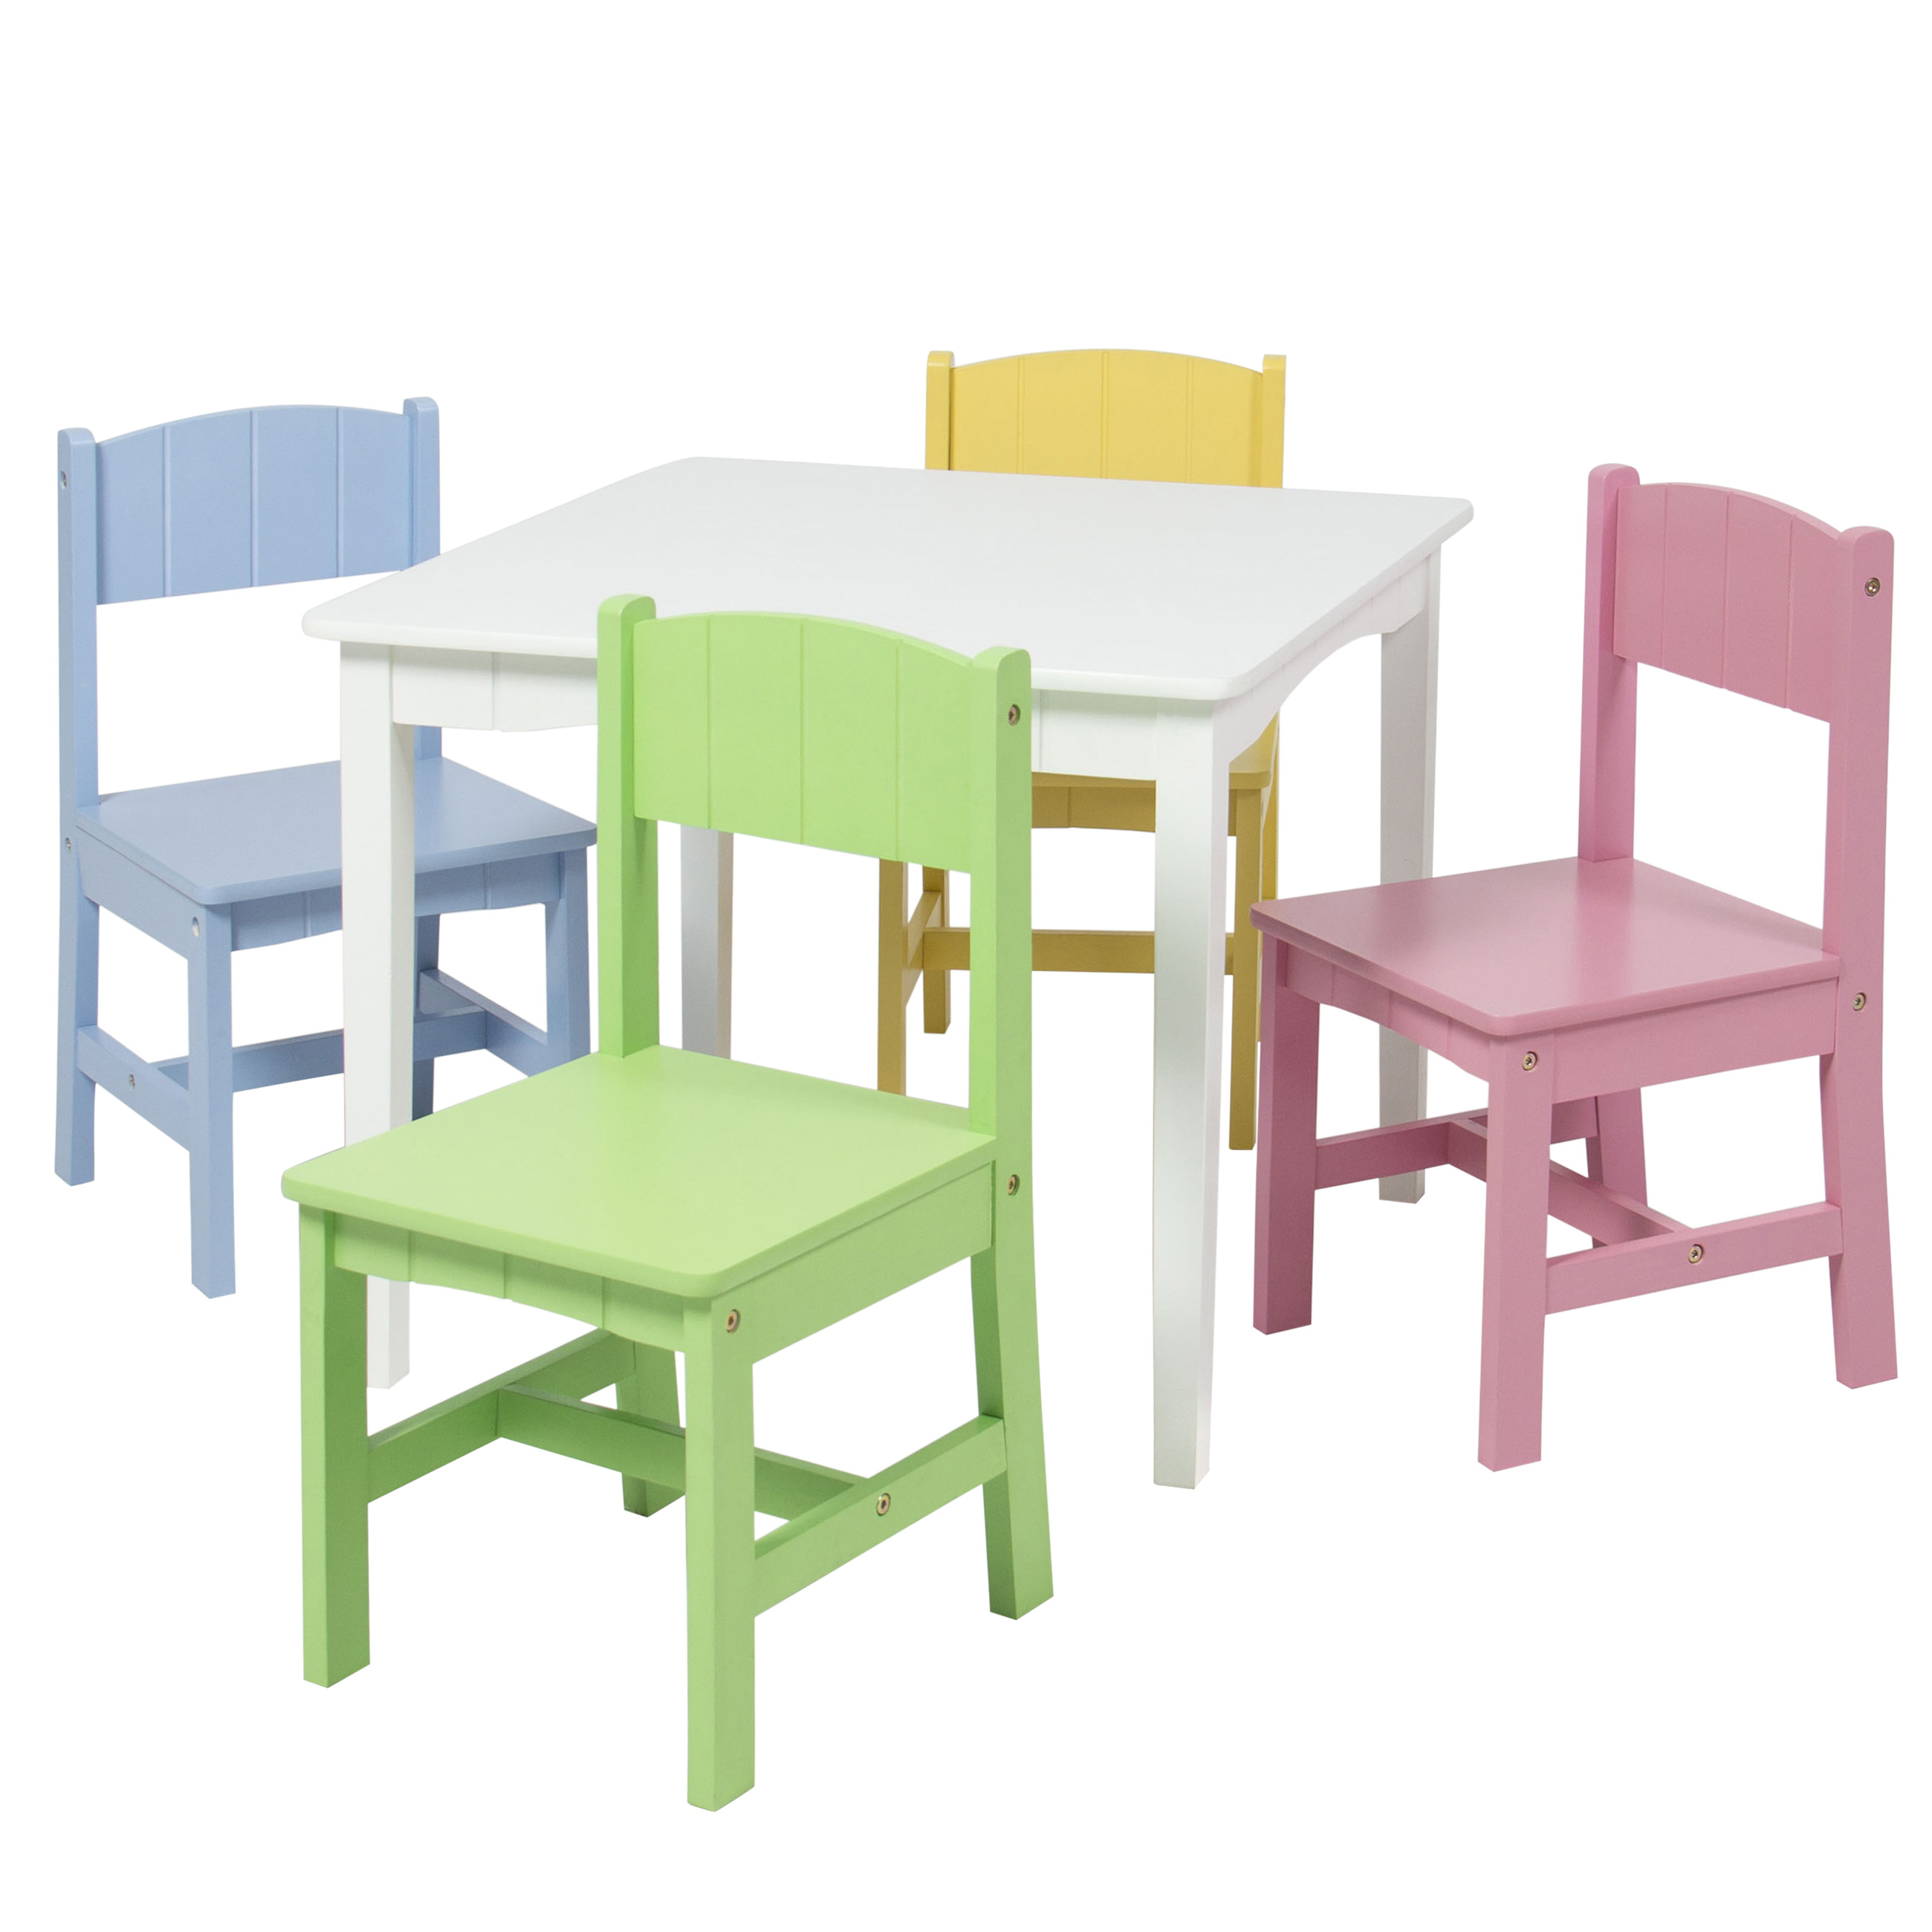 Wooden Kids Table And 4 Chairs Set Furniture Play Area School Home Ebay